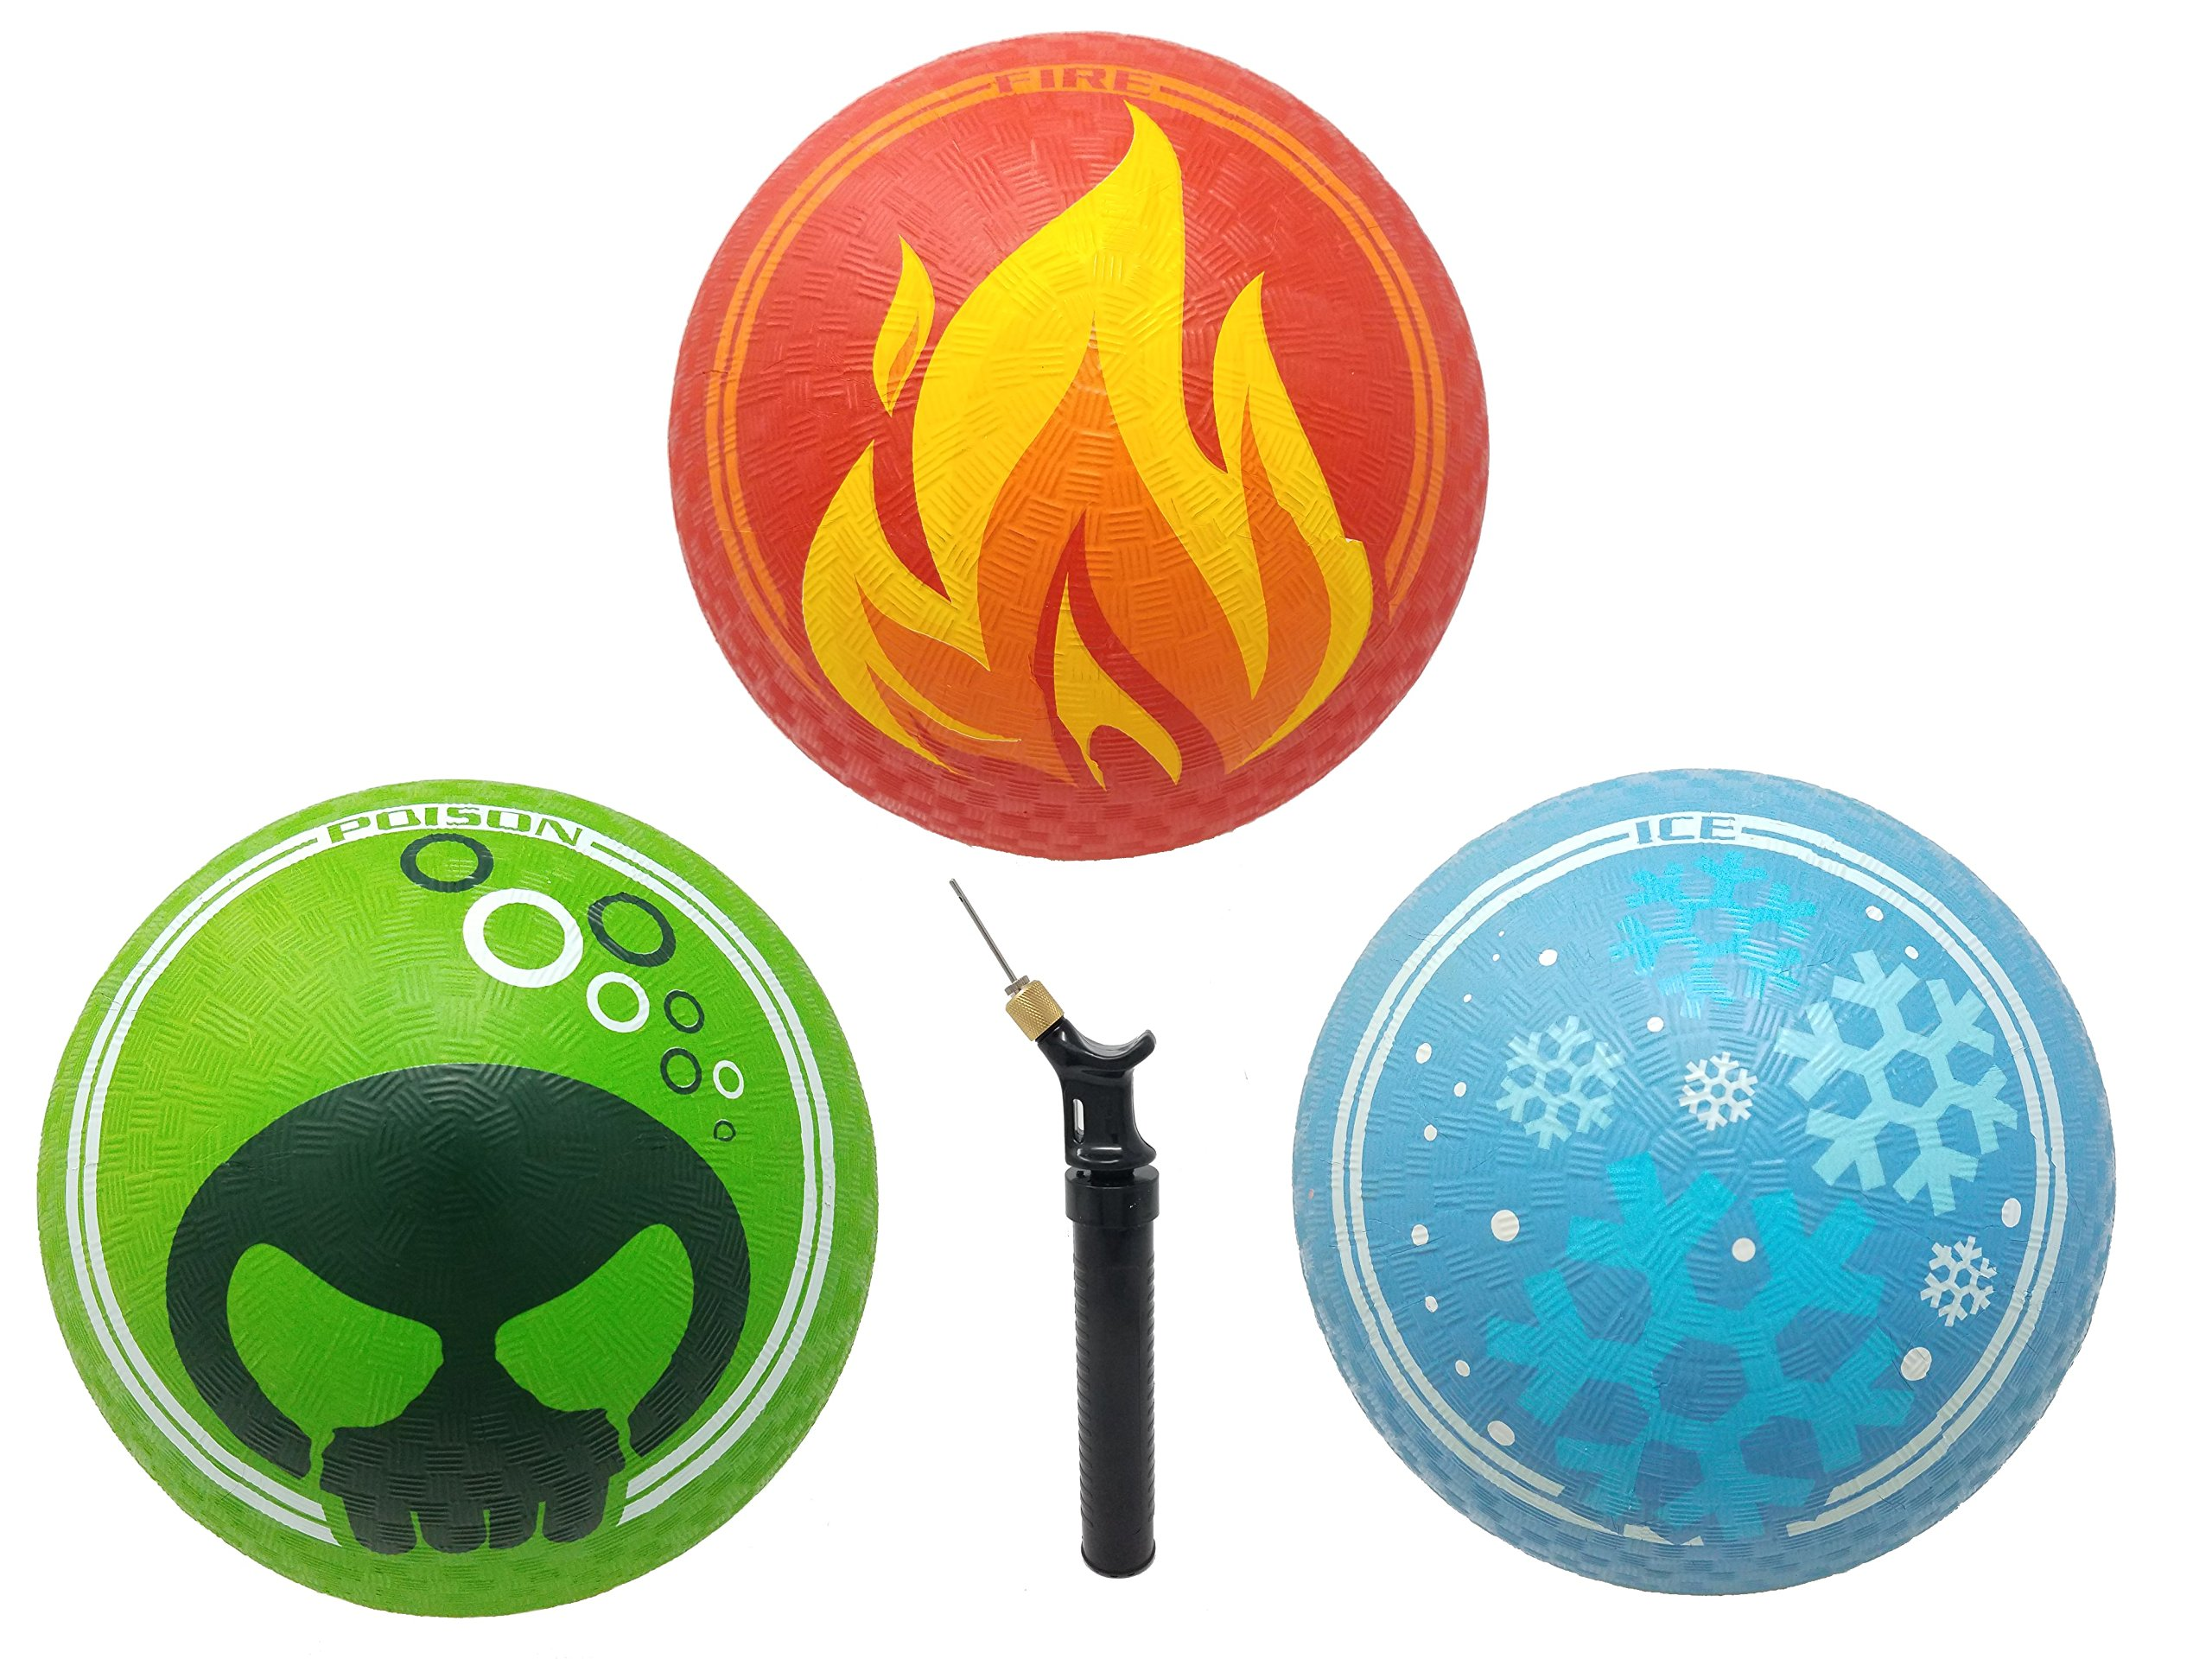 """JUJU Athletics Elemental Rubber Balls – Ideal for the Playground - 8.5"""" – Fire, Ice and Poison Designs – Includes Dual Action Ball Pump - Dodgeball, Kickball and Foursquare – 3 Pack by"""